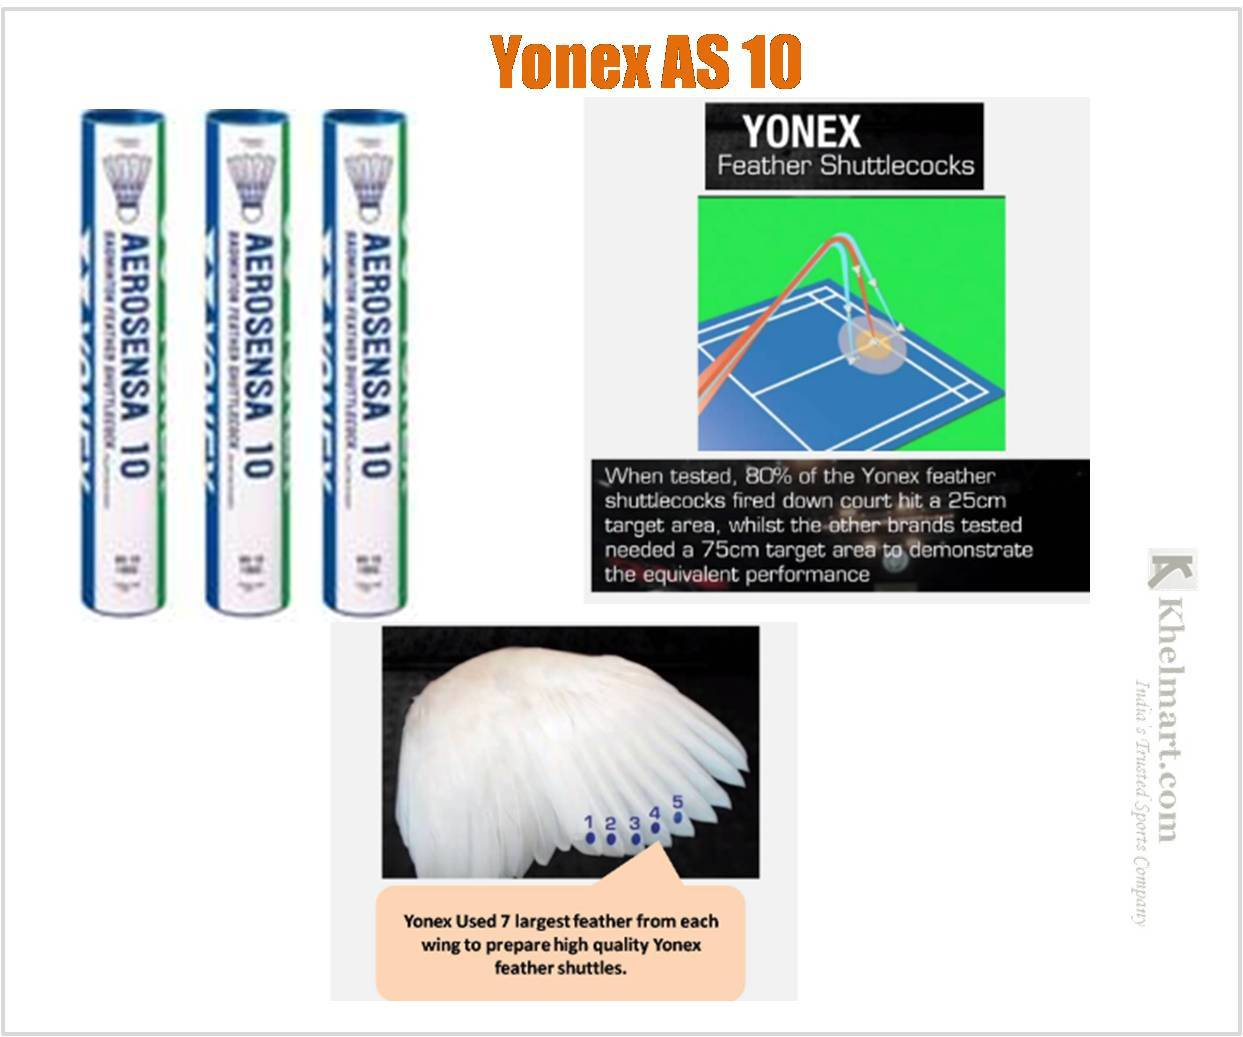 All_About_Feather_Shuttlecock_Yonex_AS10_khelmart.jpg